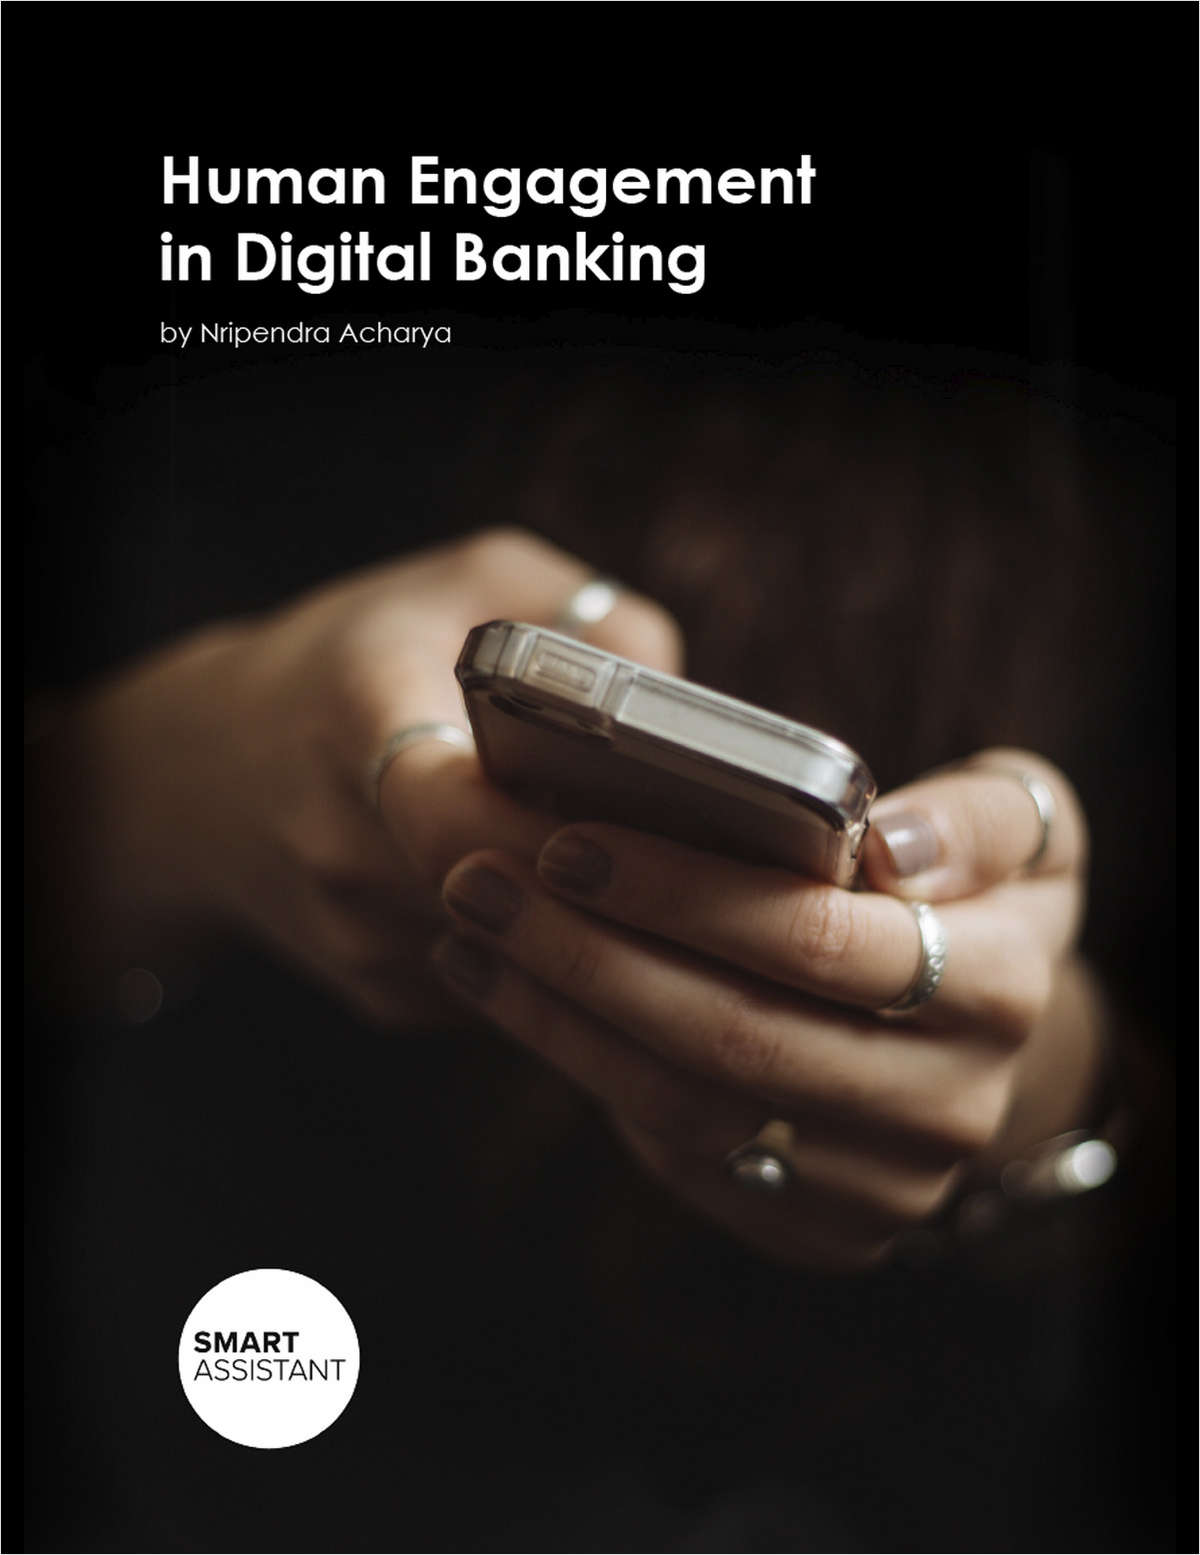 Human Engagement in Digital Banking. How Banks can Leverage AI to Create Human-Friendly, Frictionless Digital Interactions